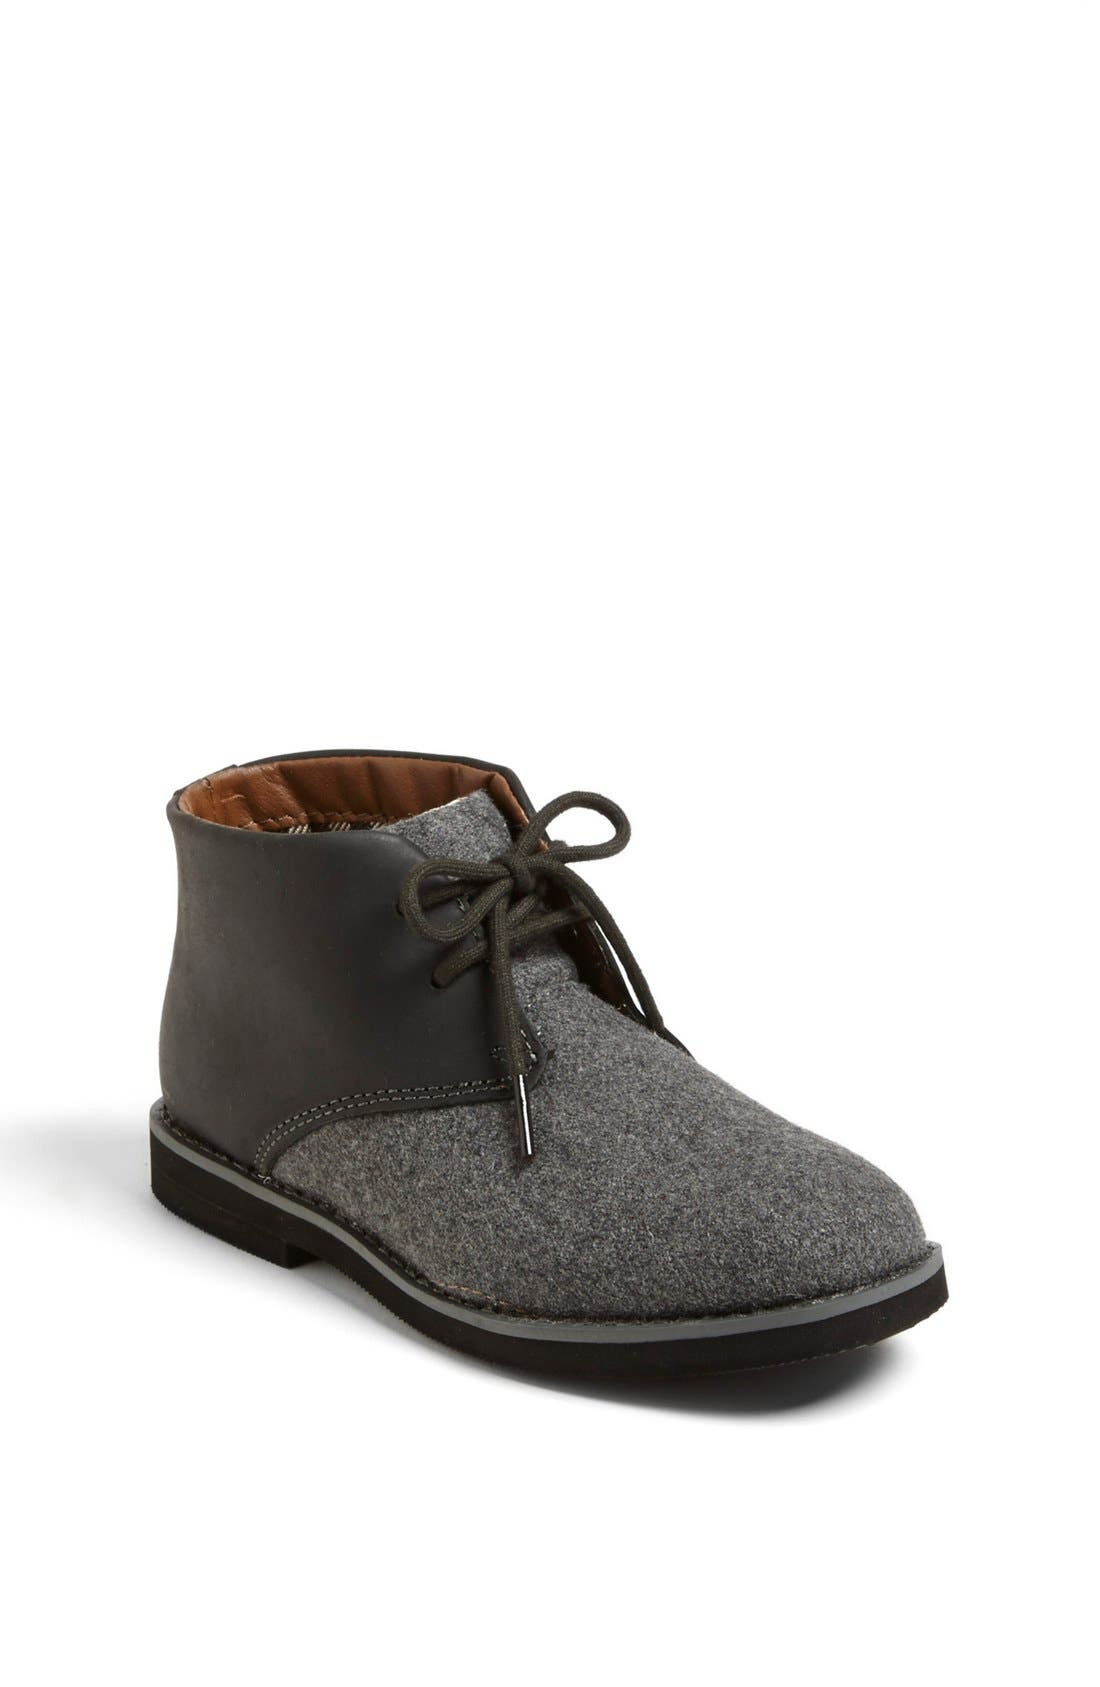 Alternate Image 1 Selected - Florsheim 'Doon' Chukka Boot (Toddler, Little Kid & Big Kid)